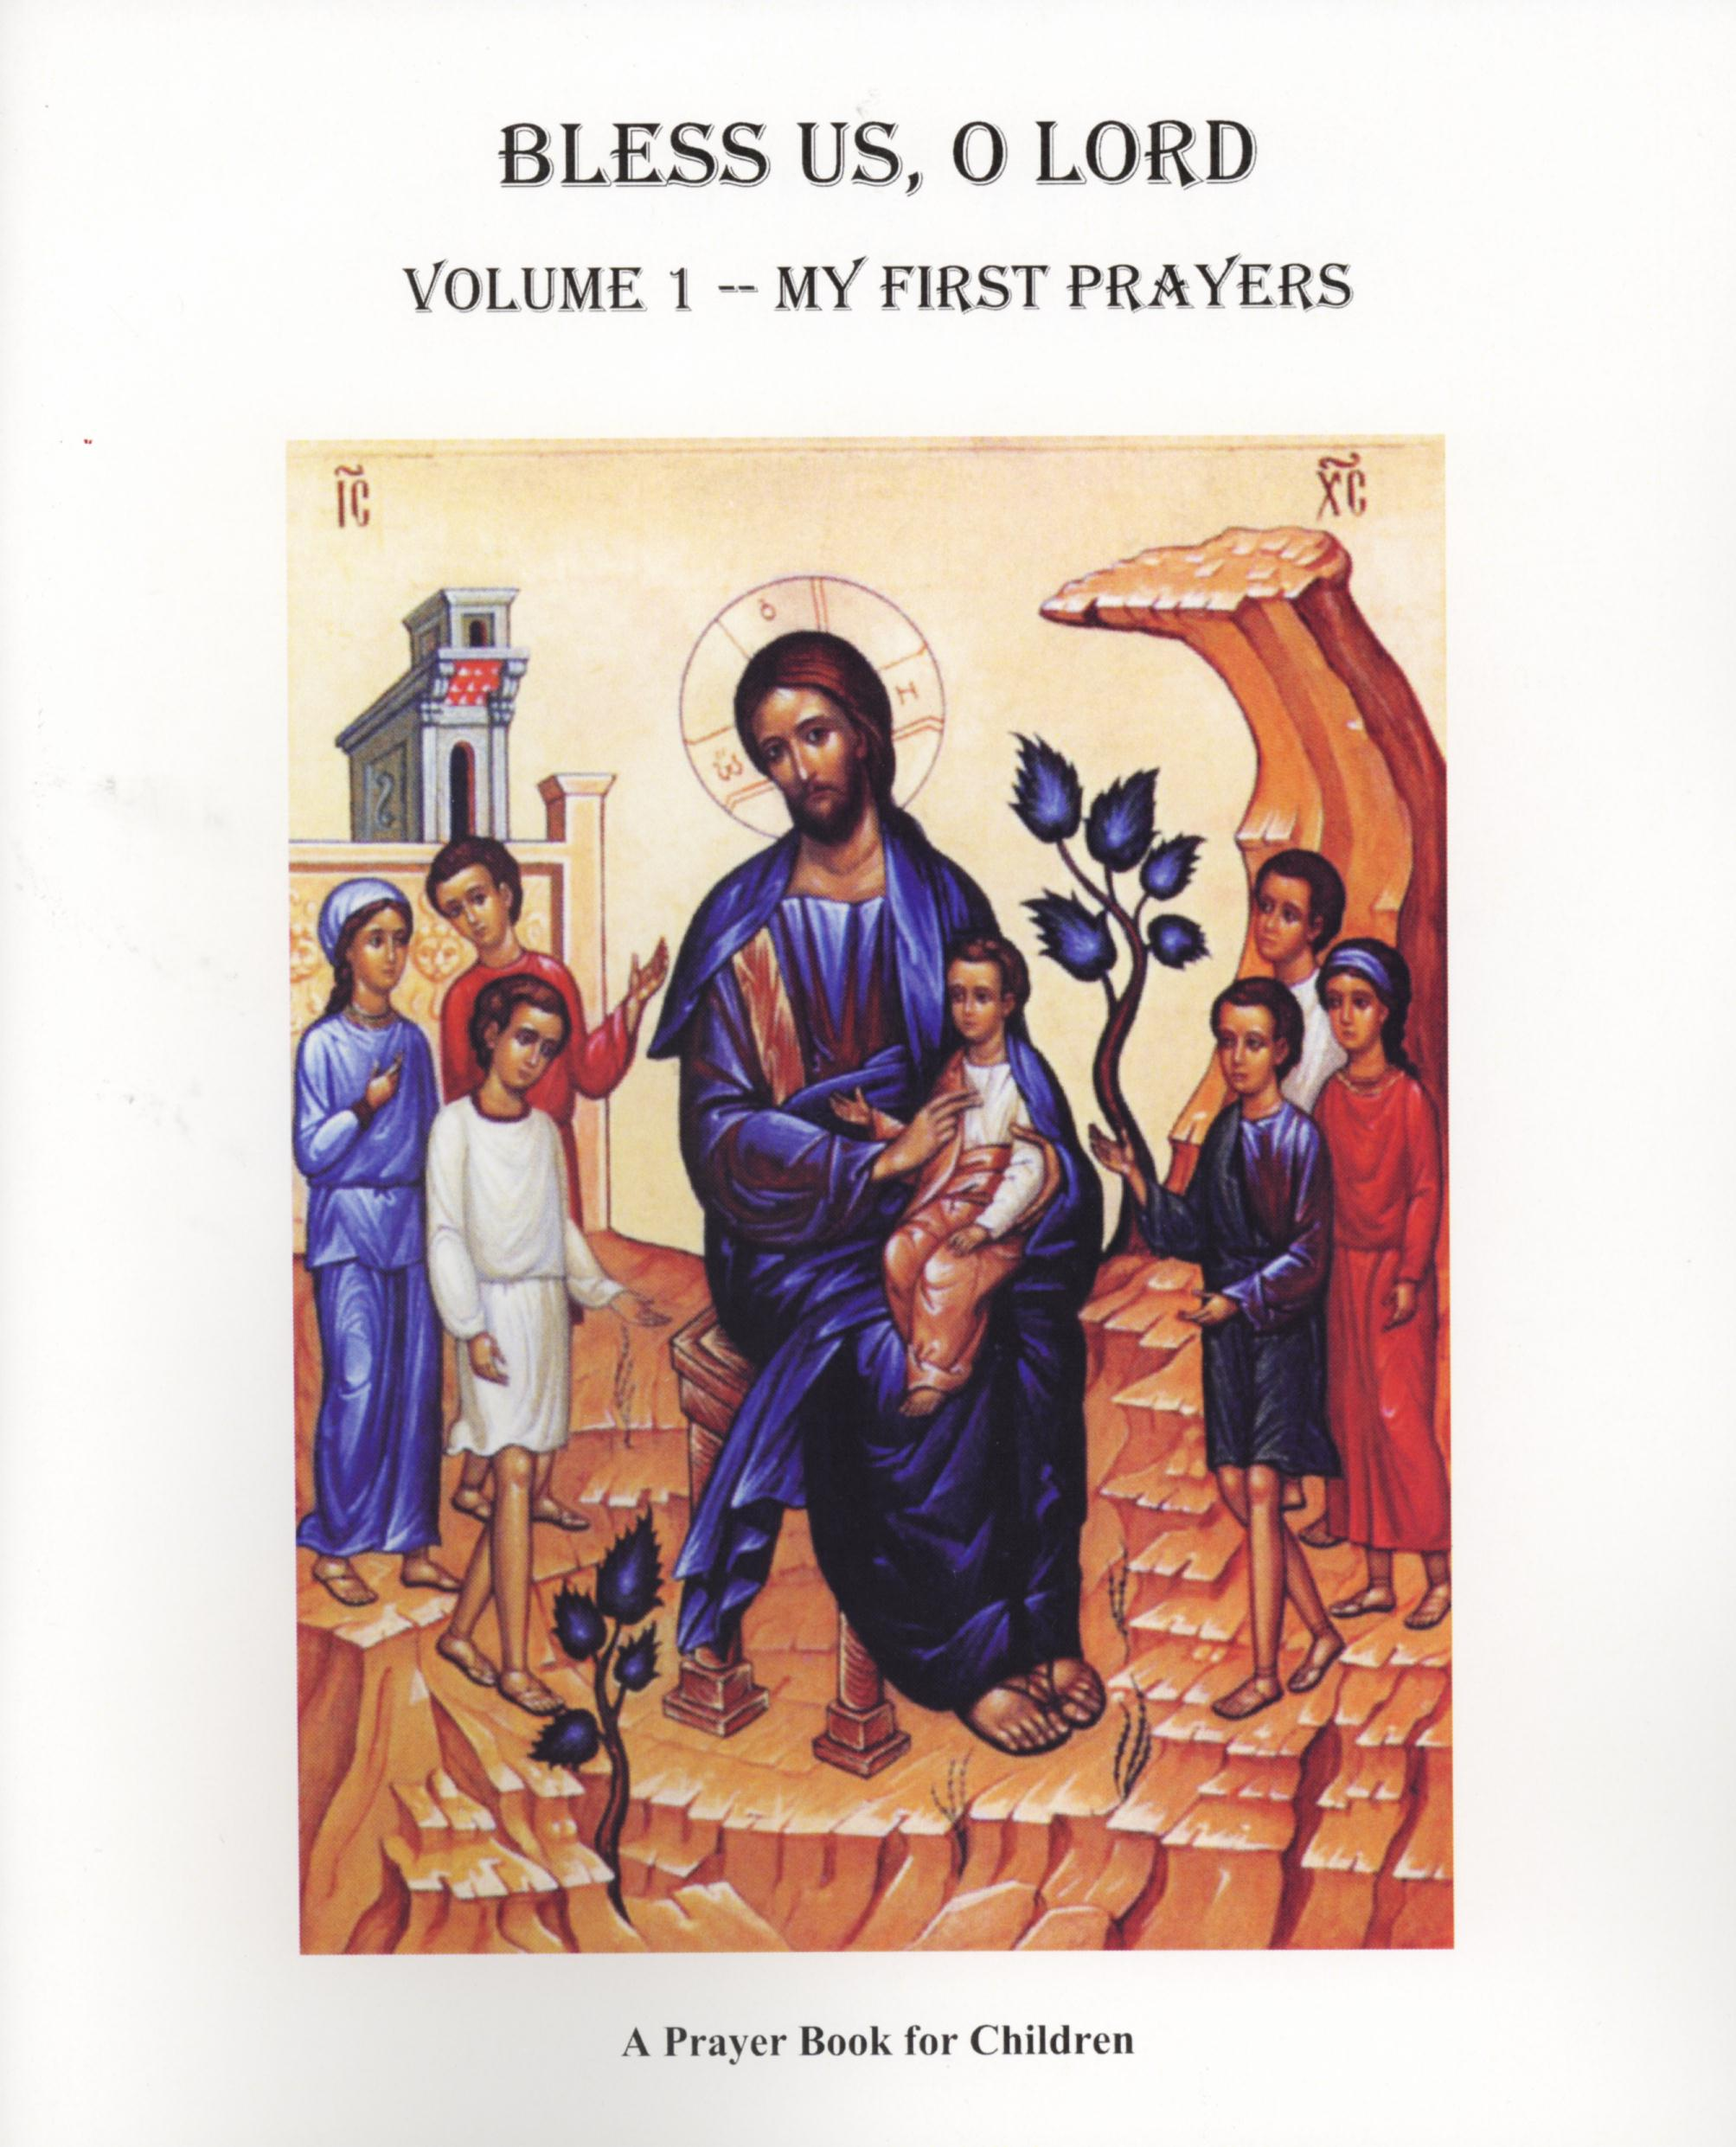 bless-us-o-lord-volume-1-my-first-prayers-CHL51-A51